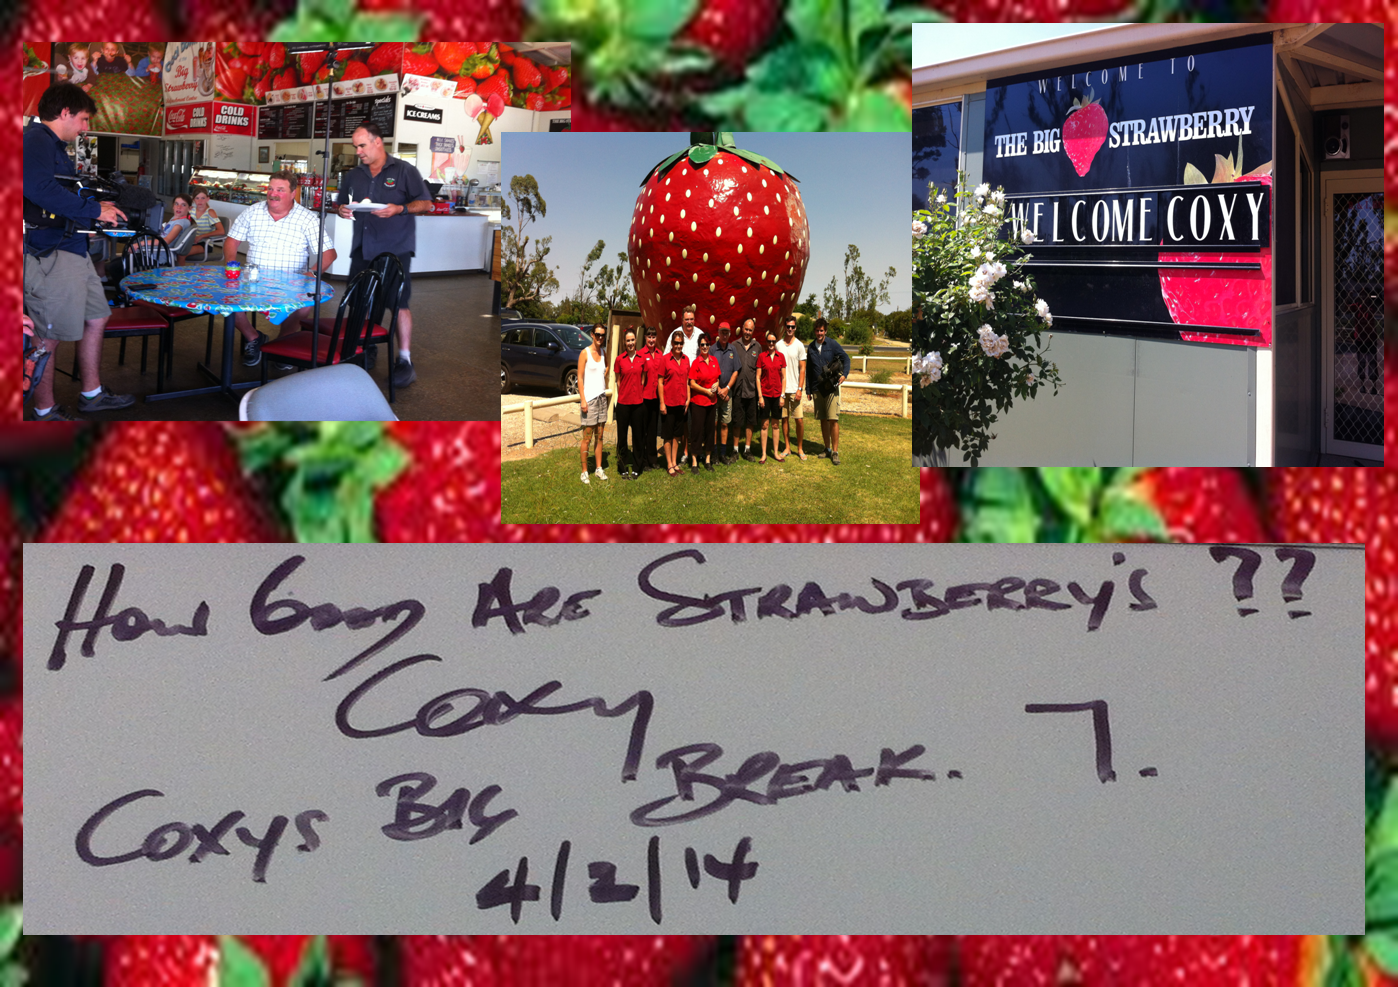 Coxy visits the big Strawberry